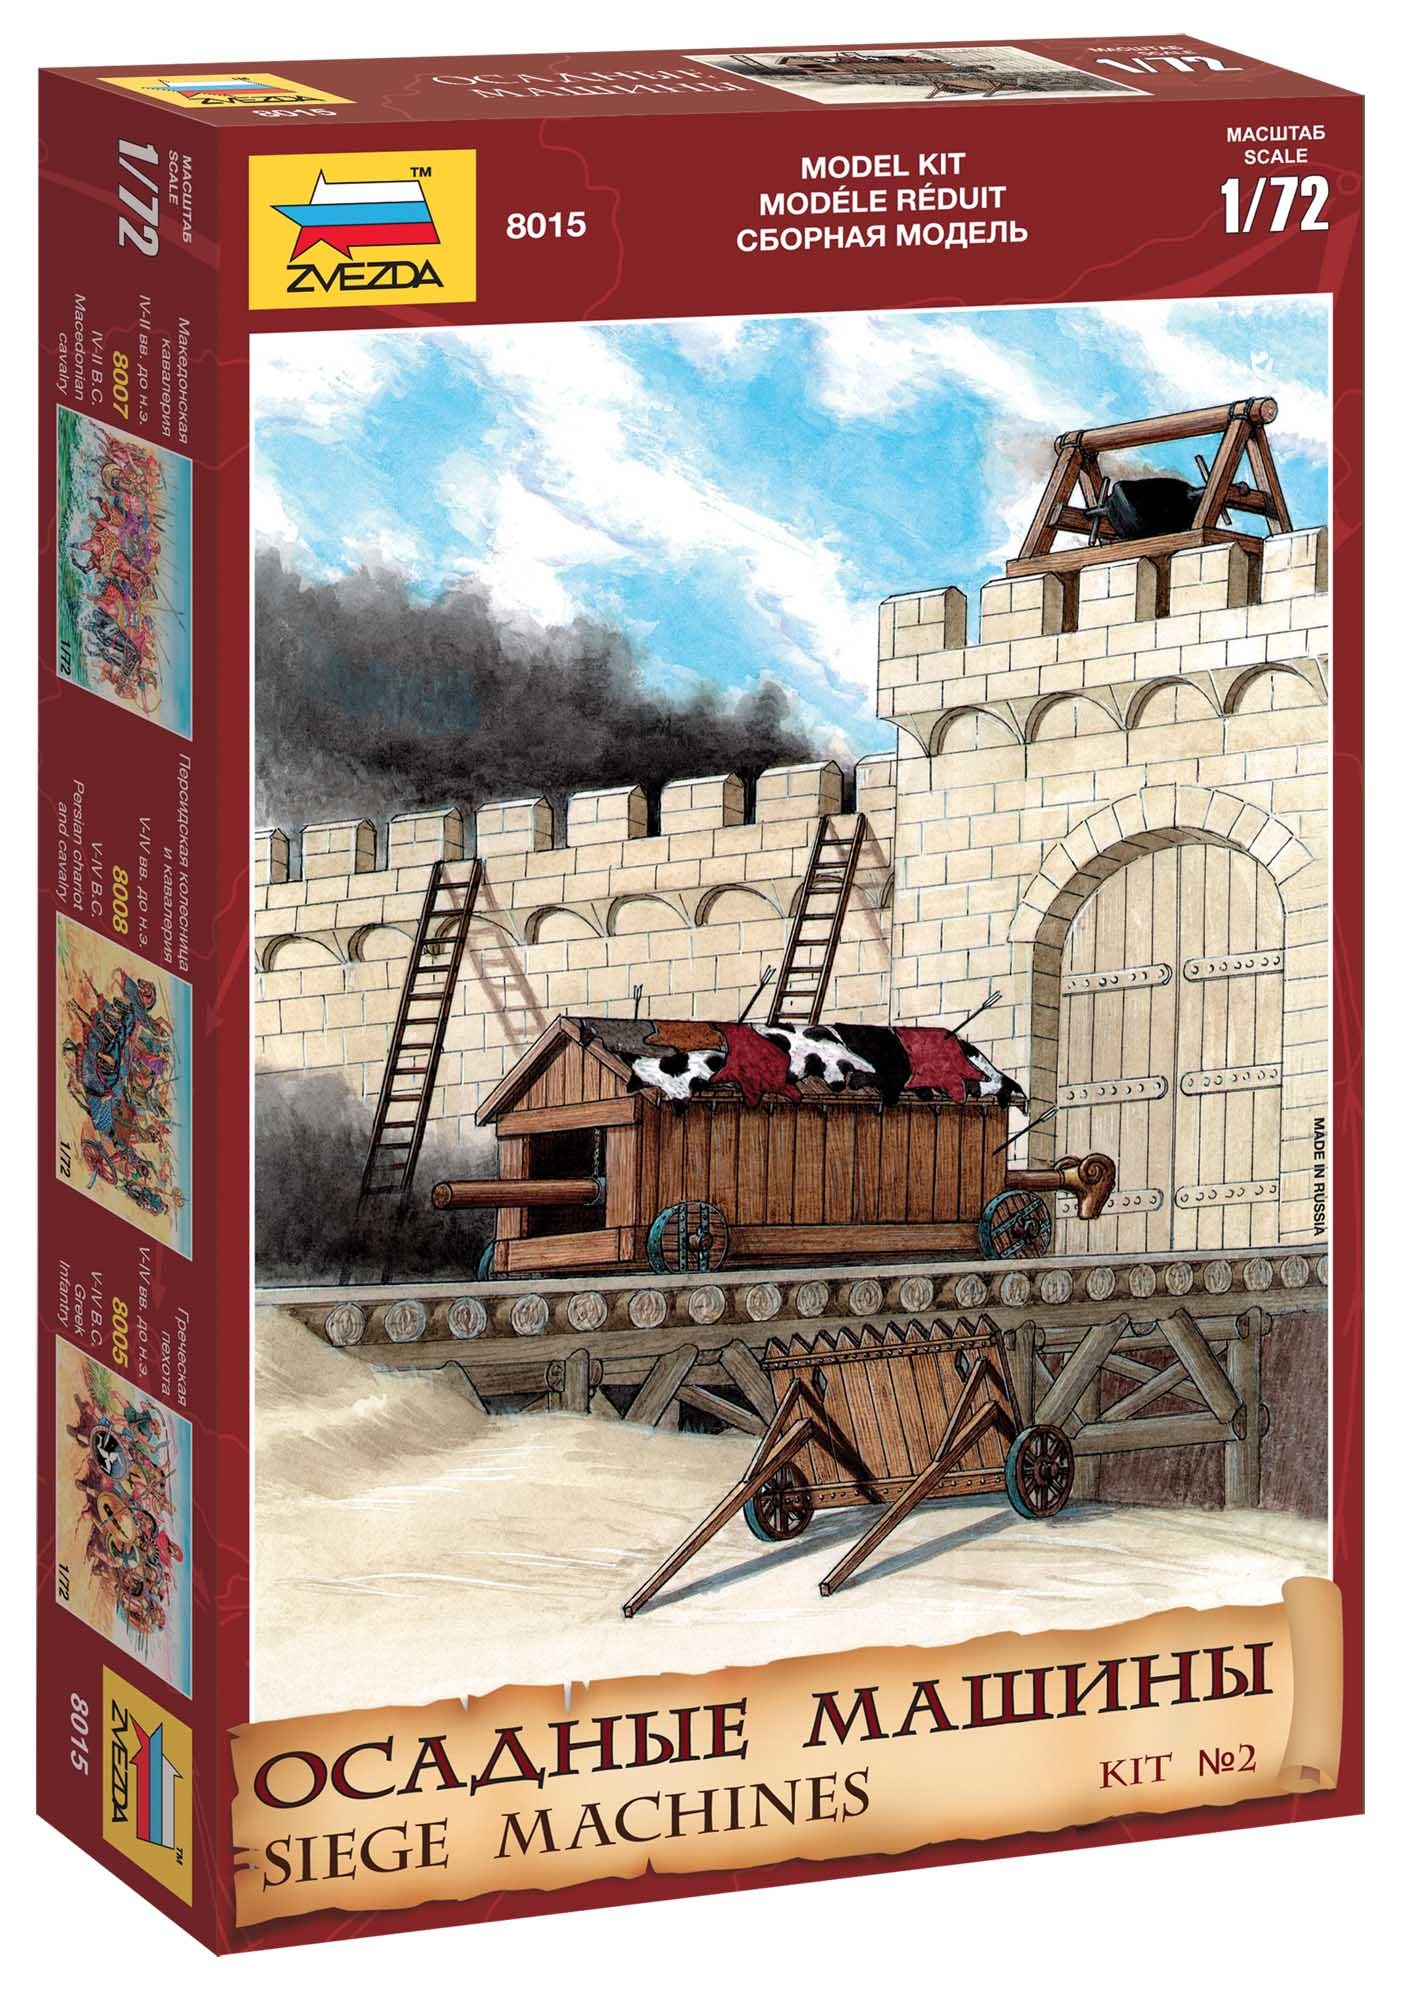 1:72 Siege Machines, Kit No. 1